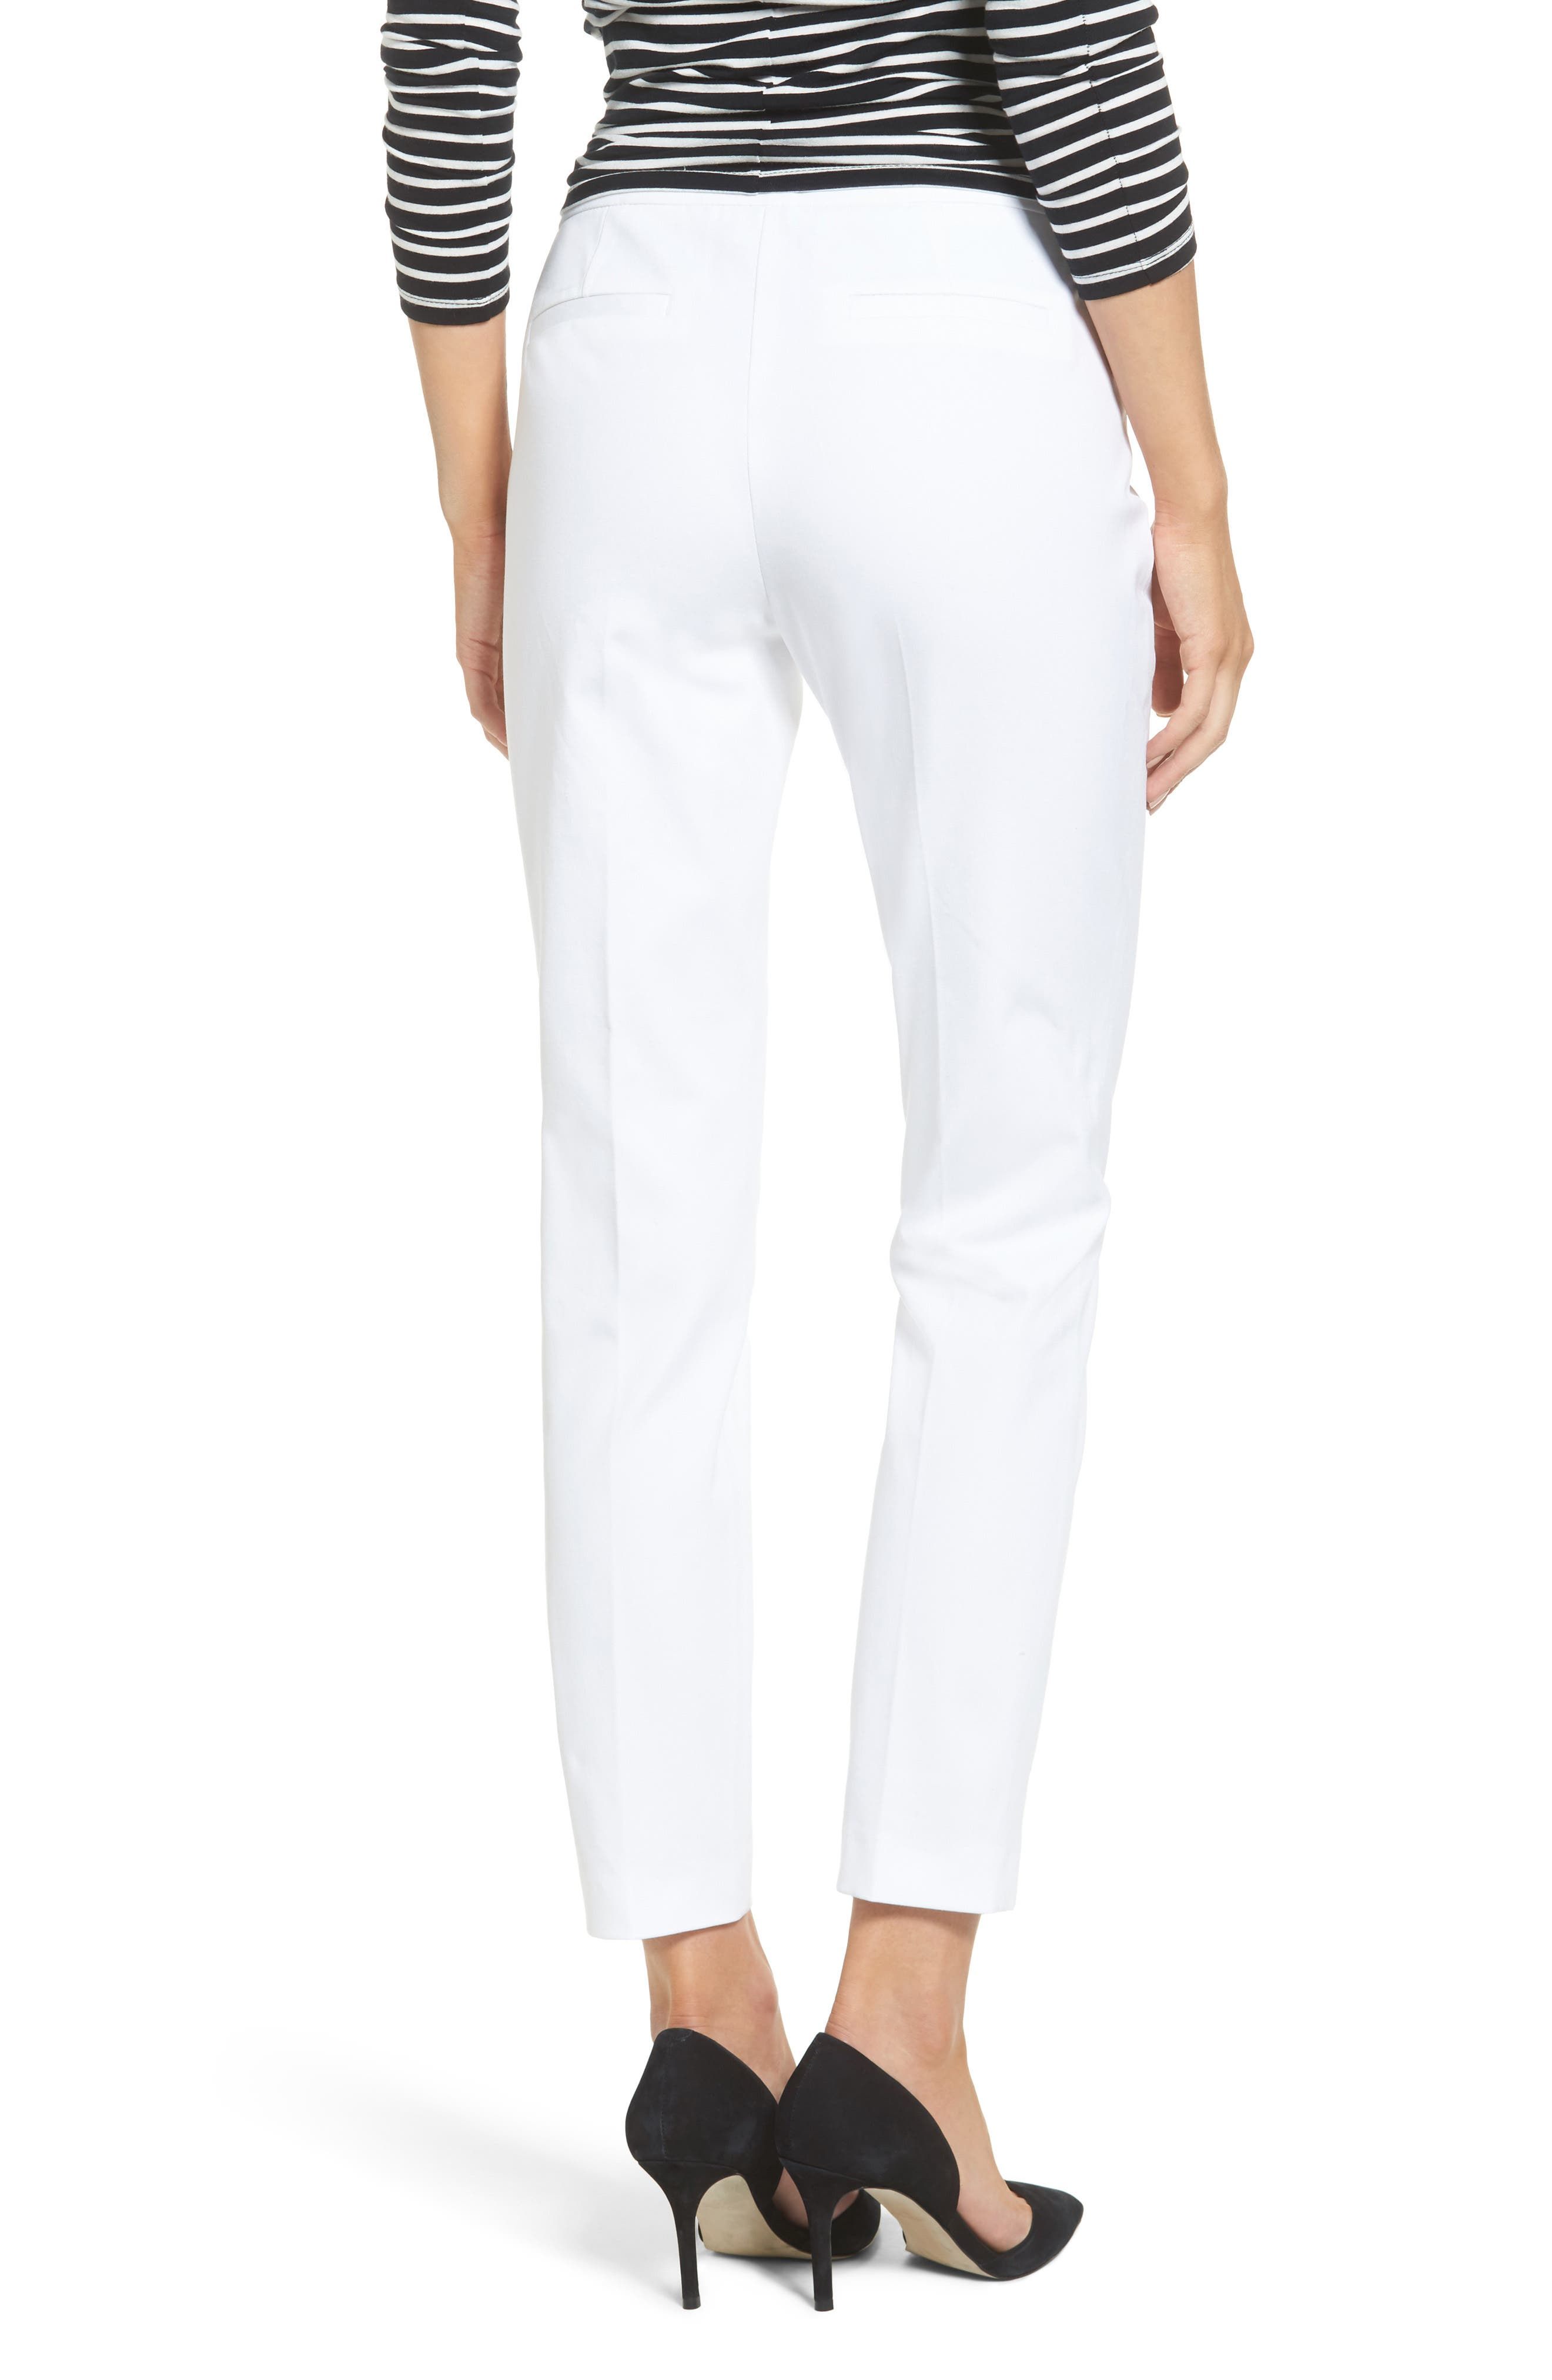 Ankle Pants,                             Alternate thumbnail 2, color,                             White